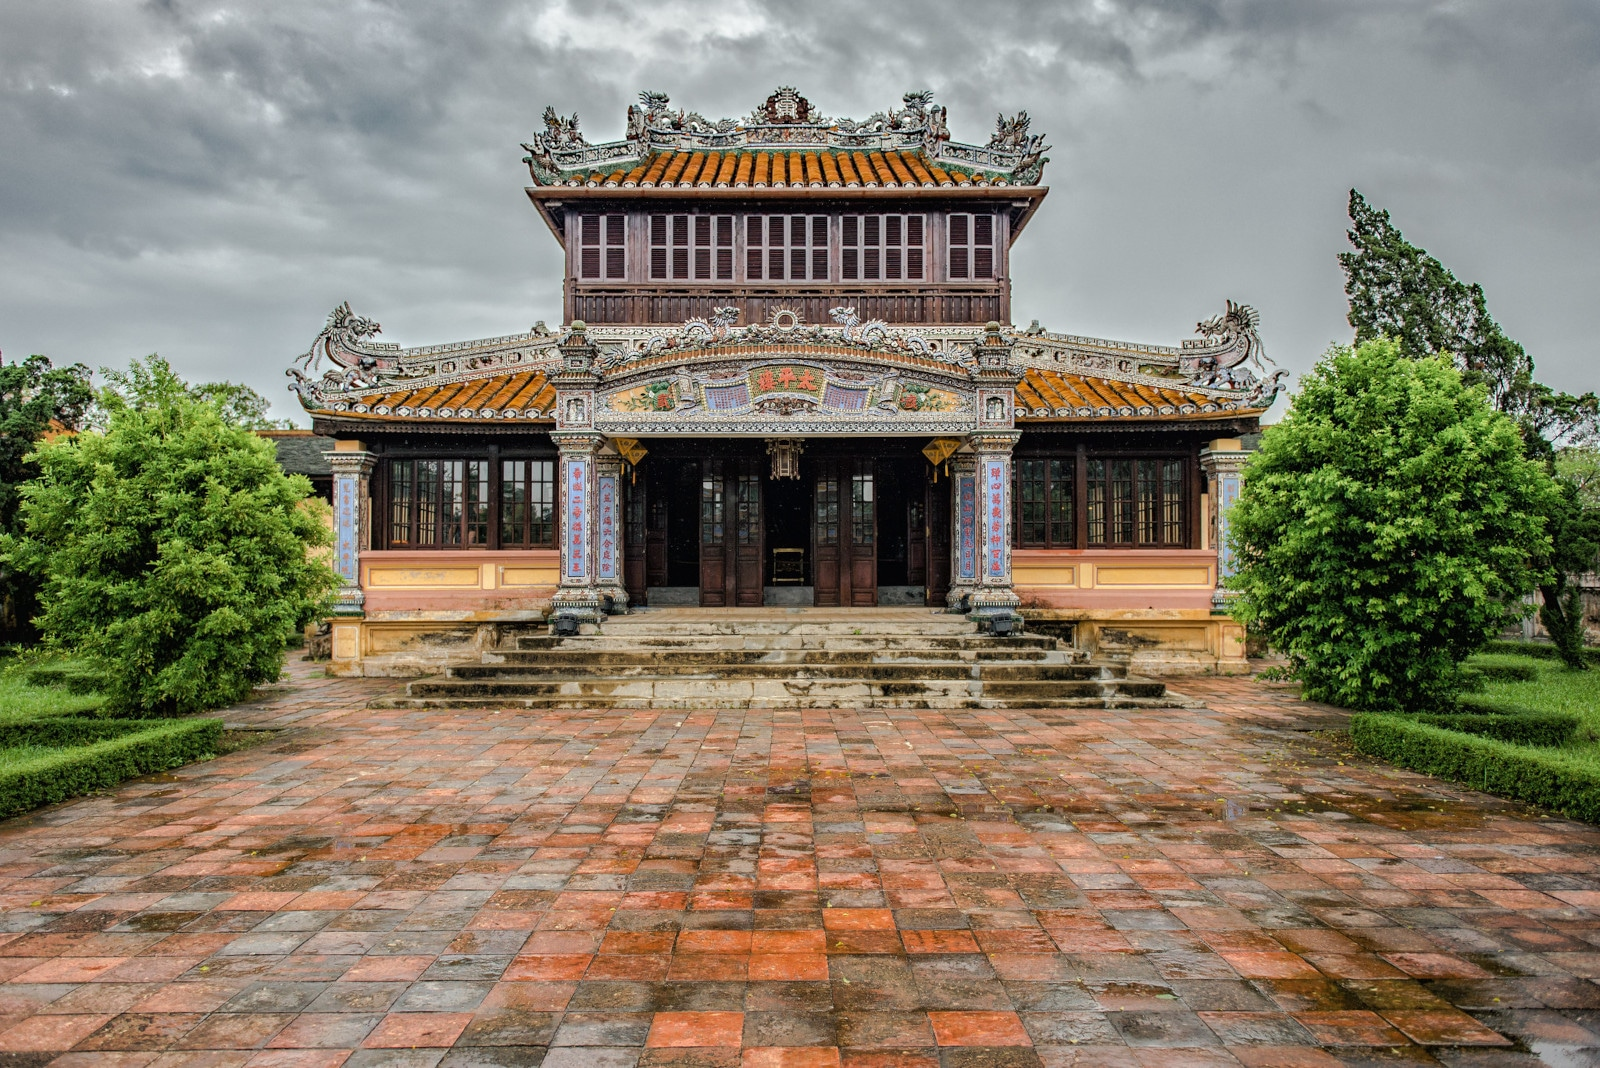 Image of the Thai Binh Pavilion in the Imperial City of Hue, Vietnam